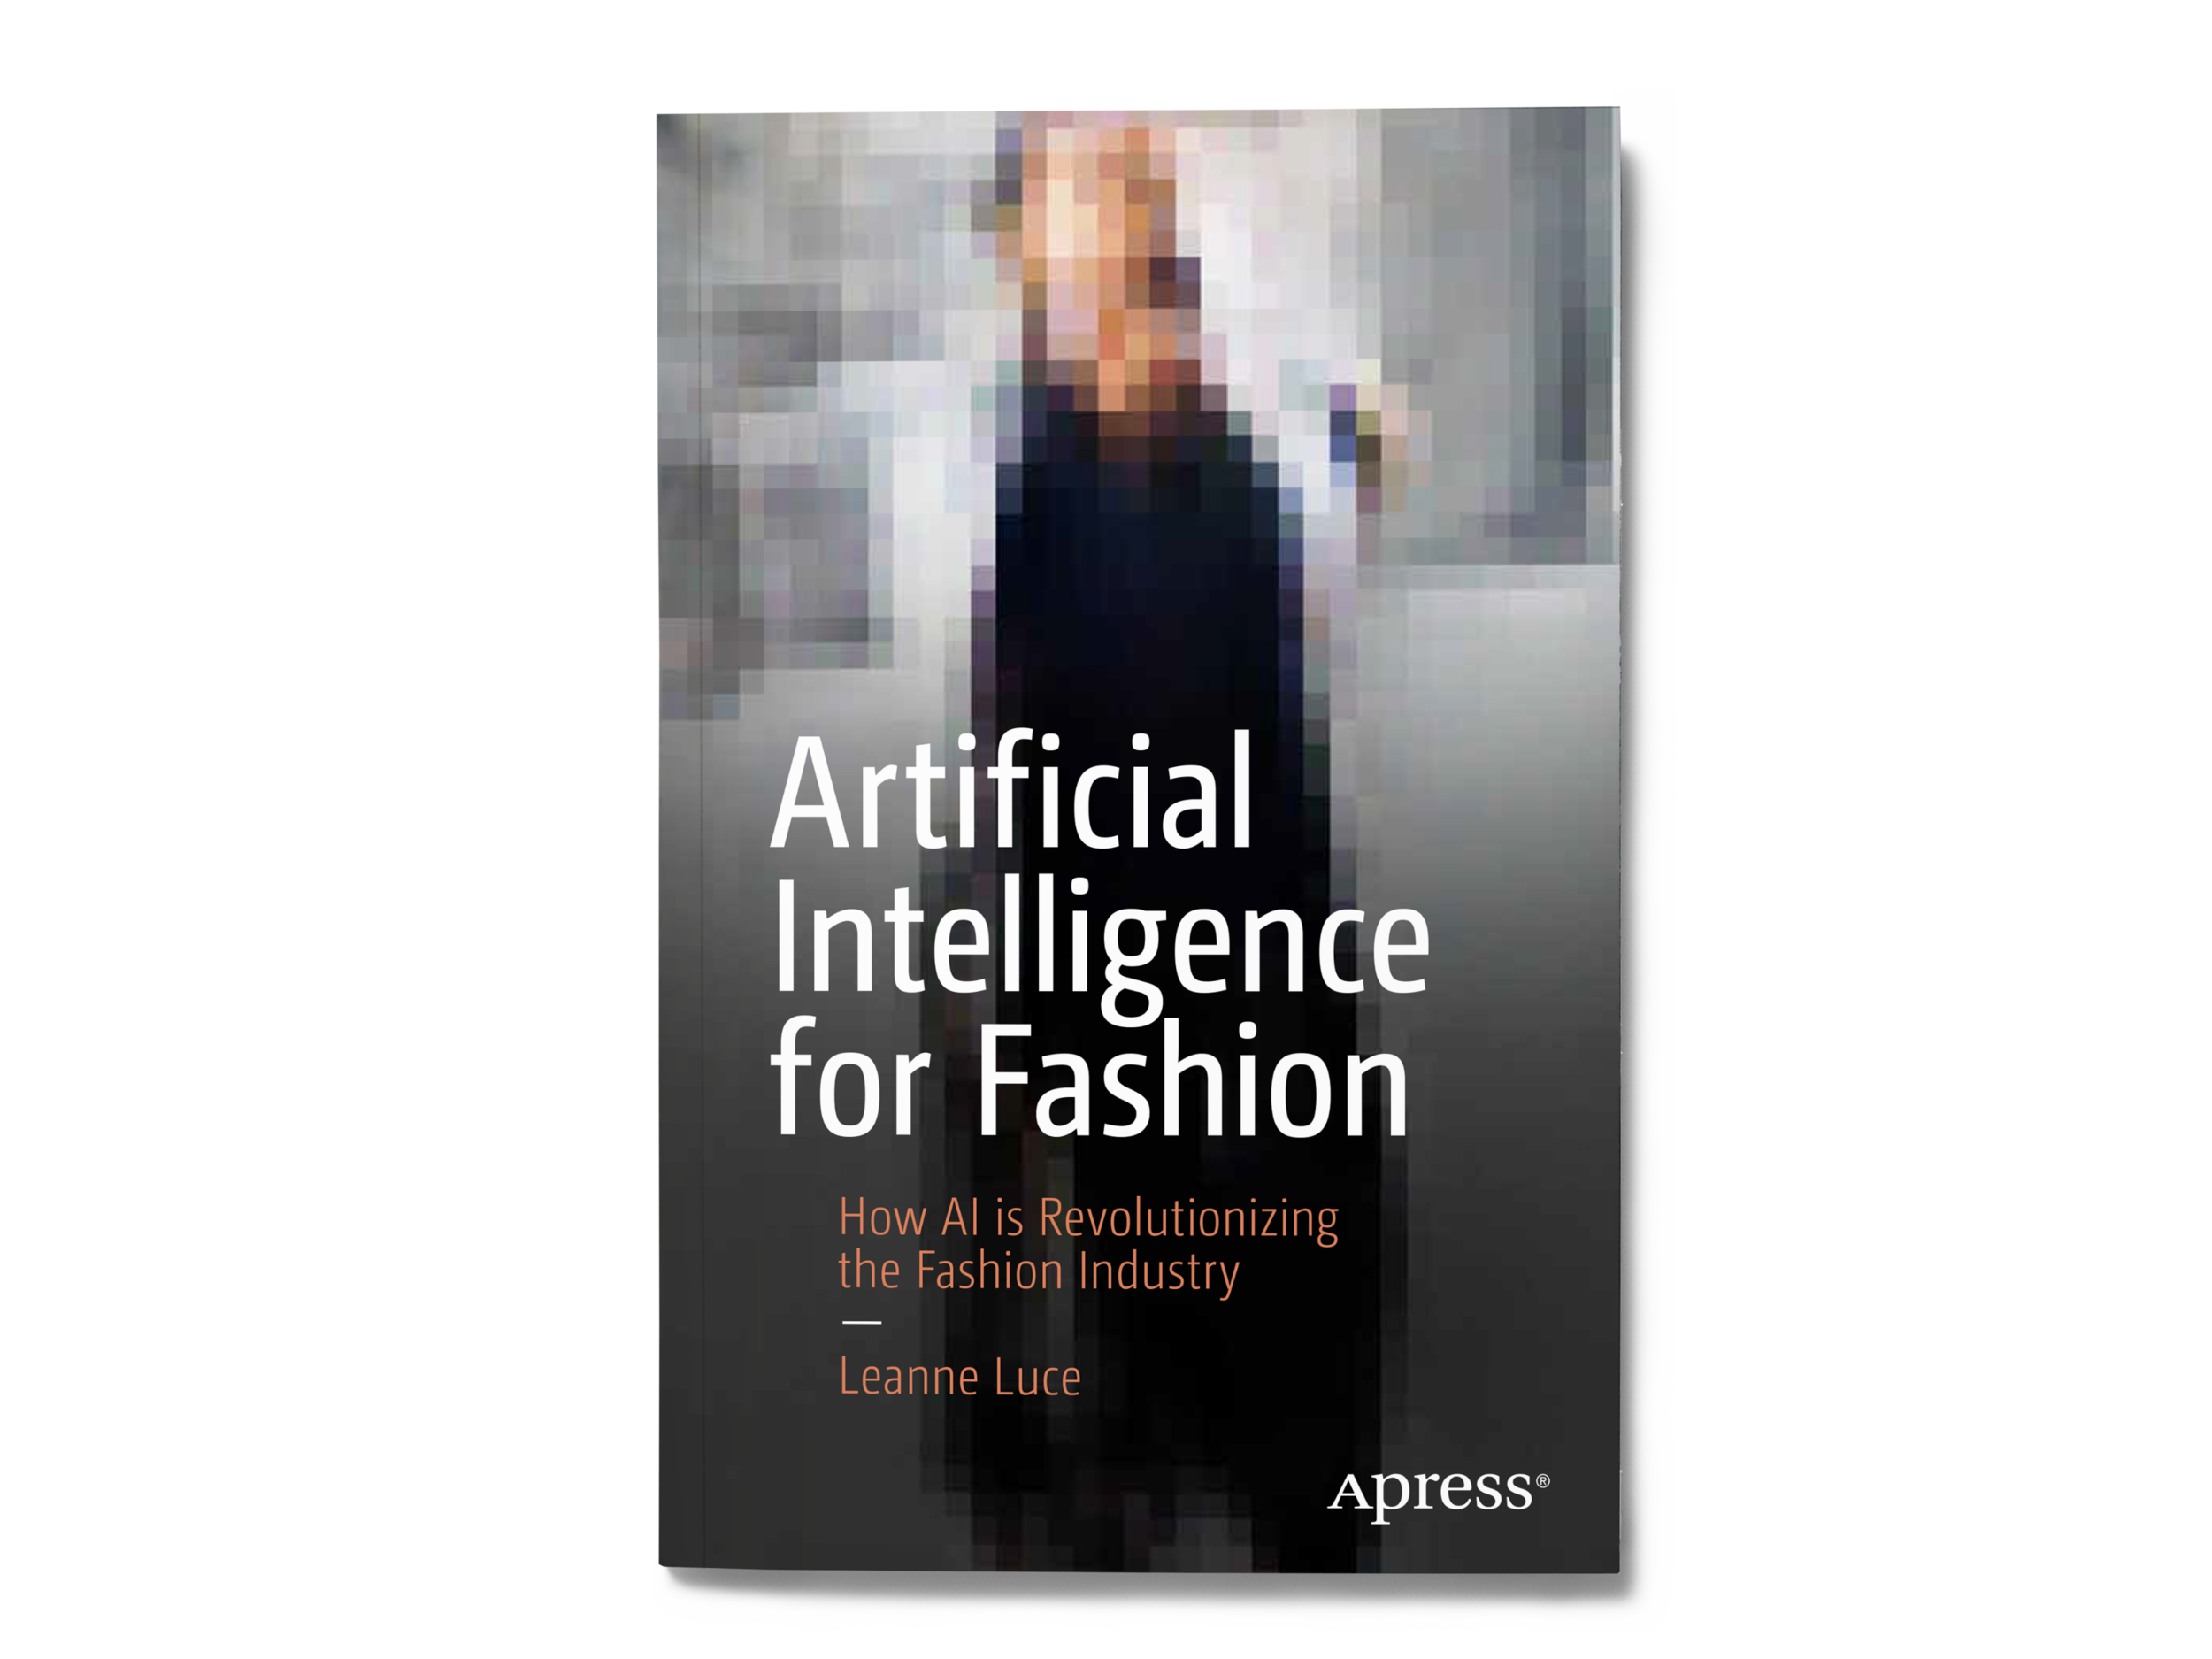 Artificial Intelligence for Fashion by Leanne Luce, Book Cover